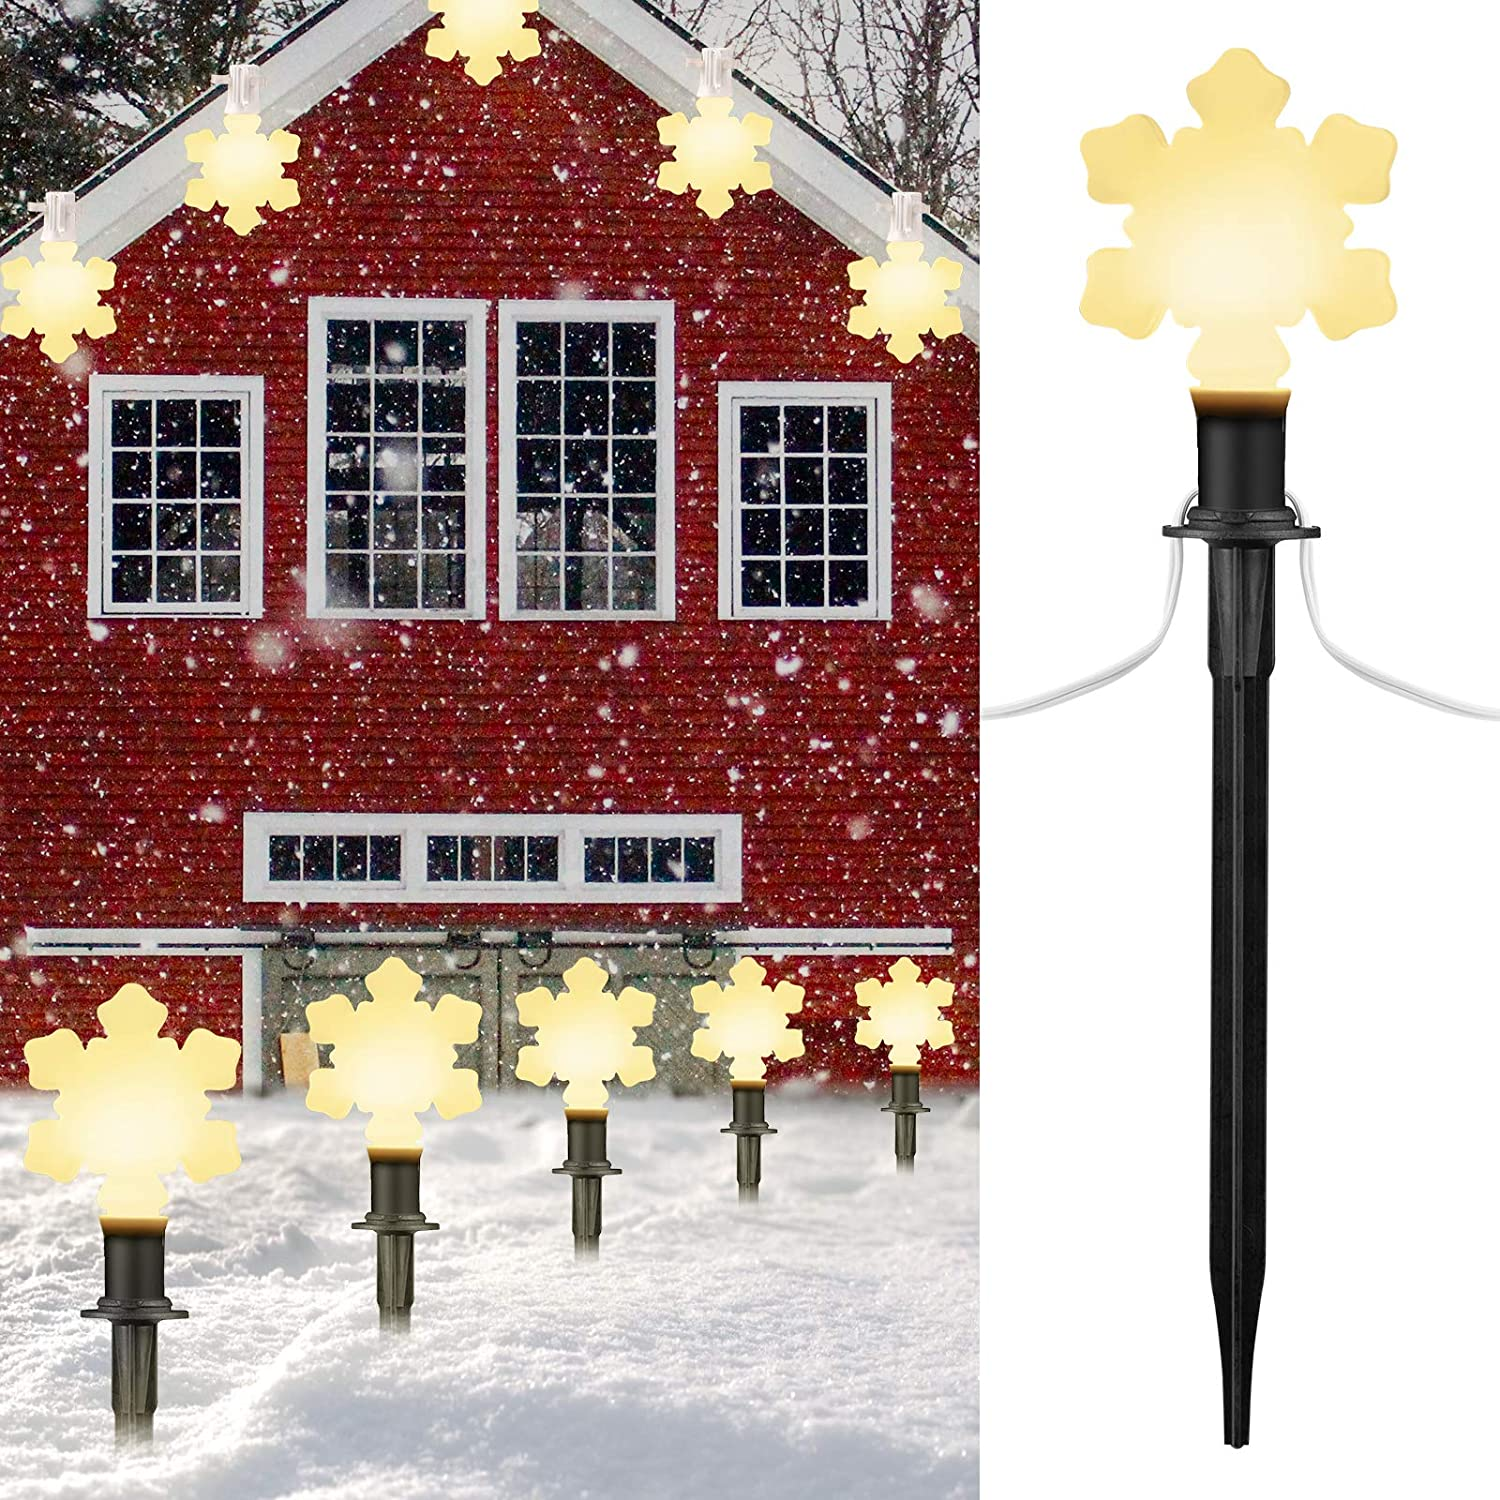 Snowflake Christmas Lights Outdoor Decorations Lawn with Pathway Marker Stakes, 7.16 Feet String Lights Covered Snowflake Light Bulb, for Holiday Time Outside Yard Garden Decor, 2 Pack, 10 Lights